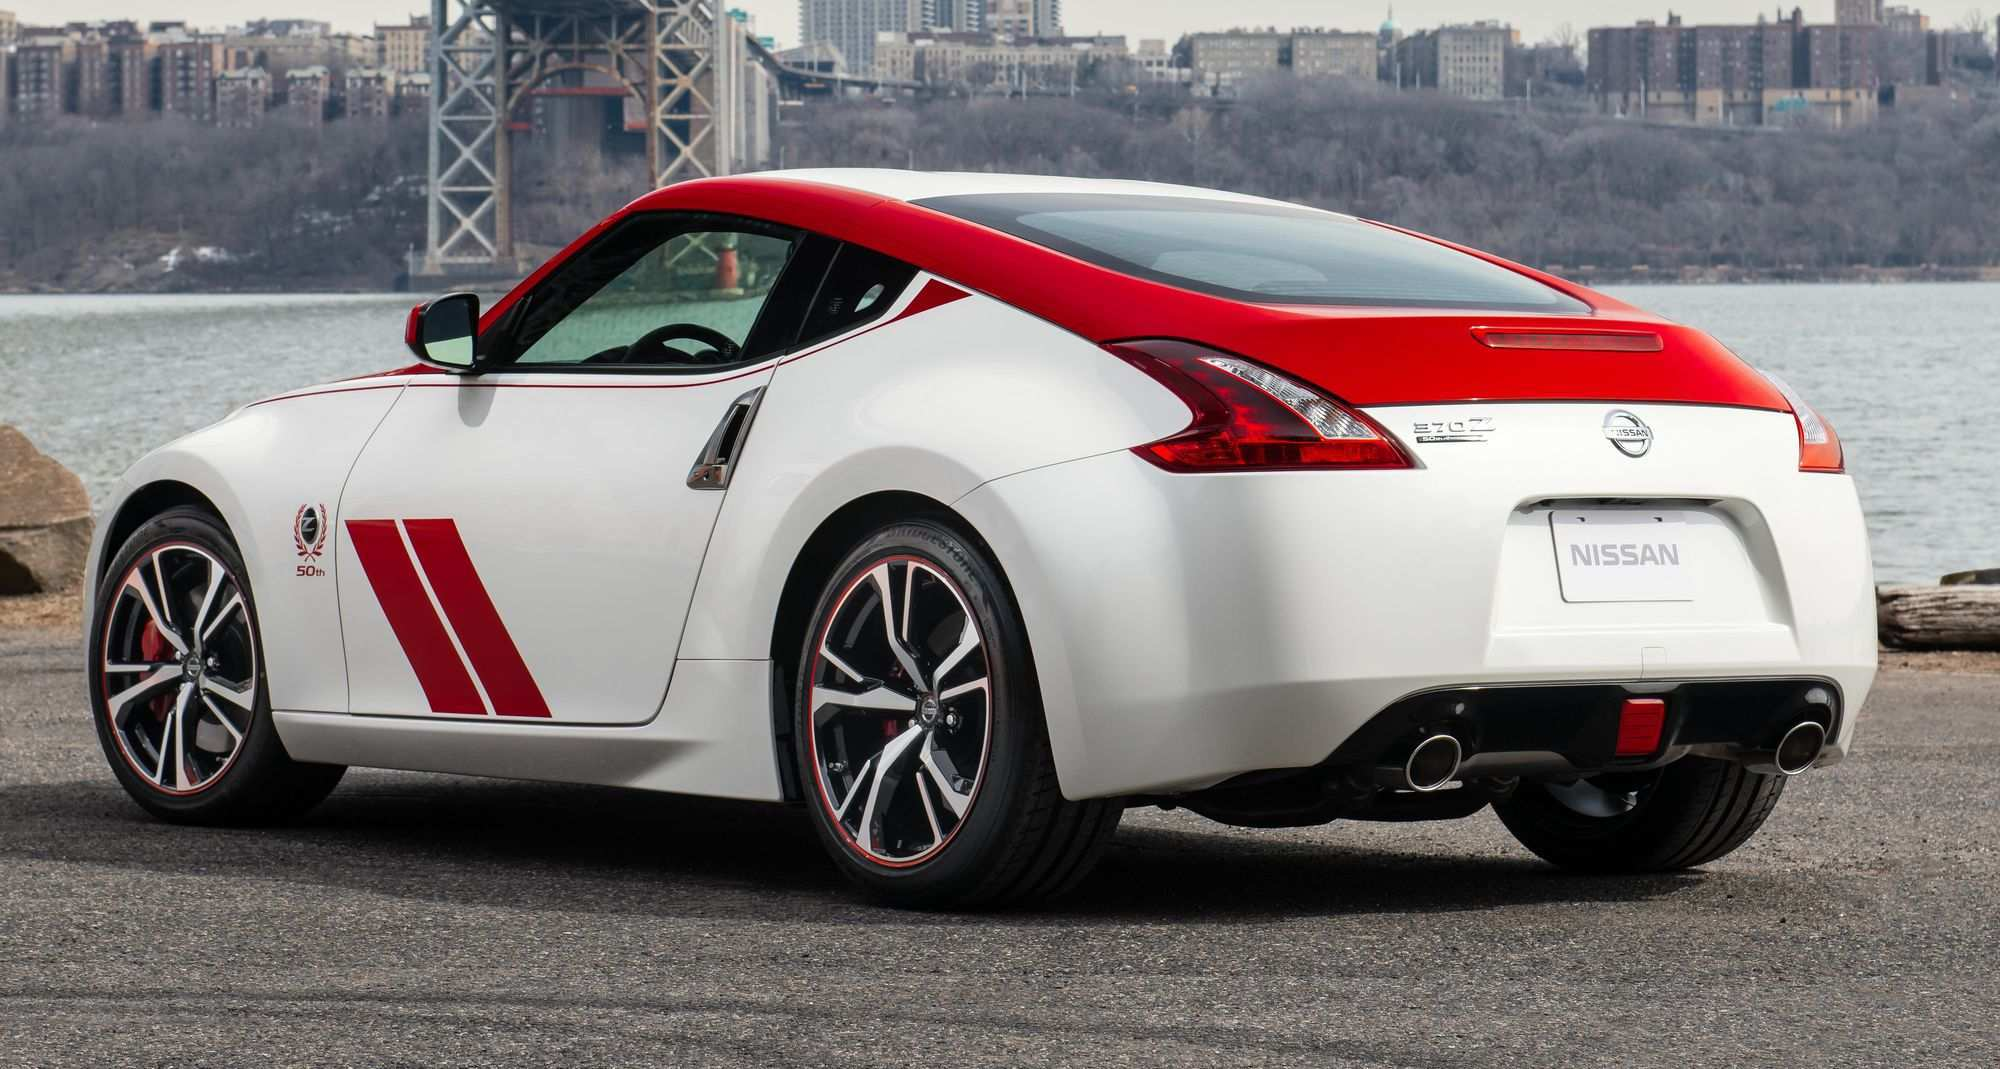 51 Best Review Nissan New Z 2020 Style for Nissan New Z 2020